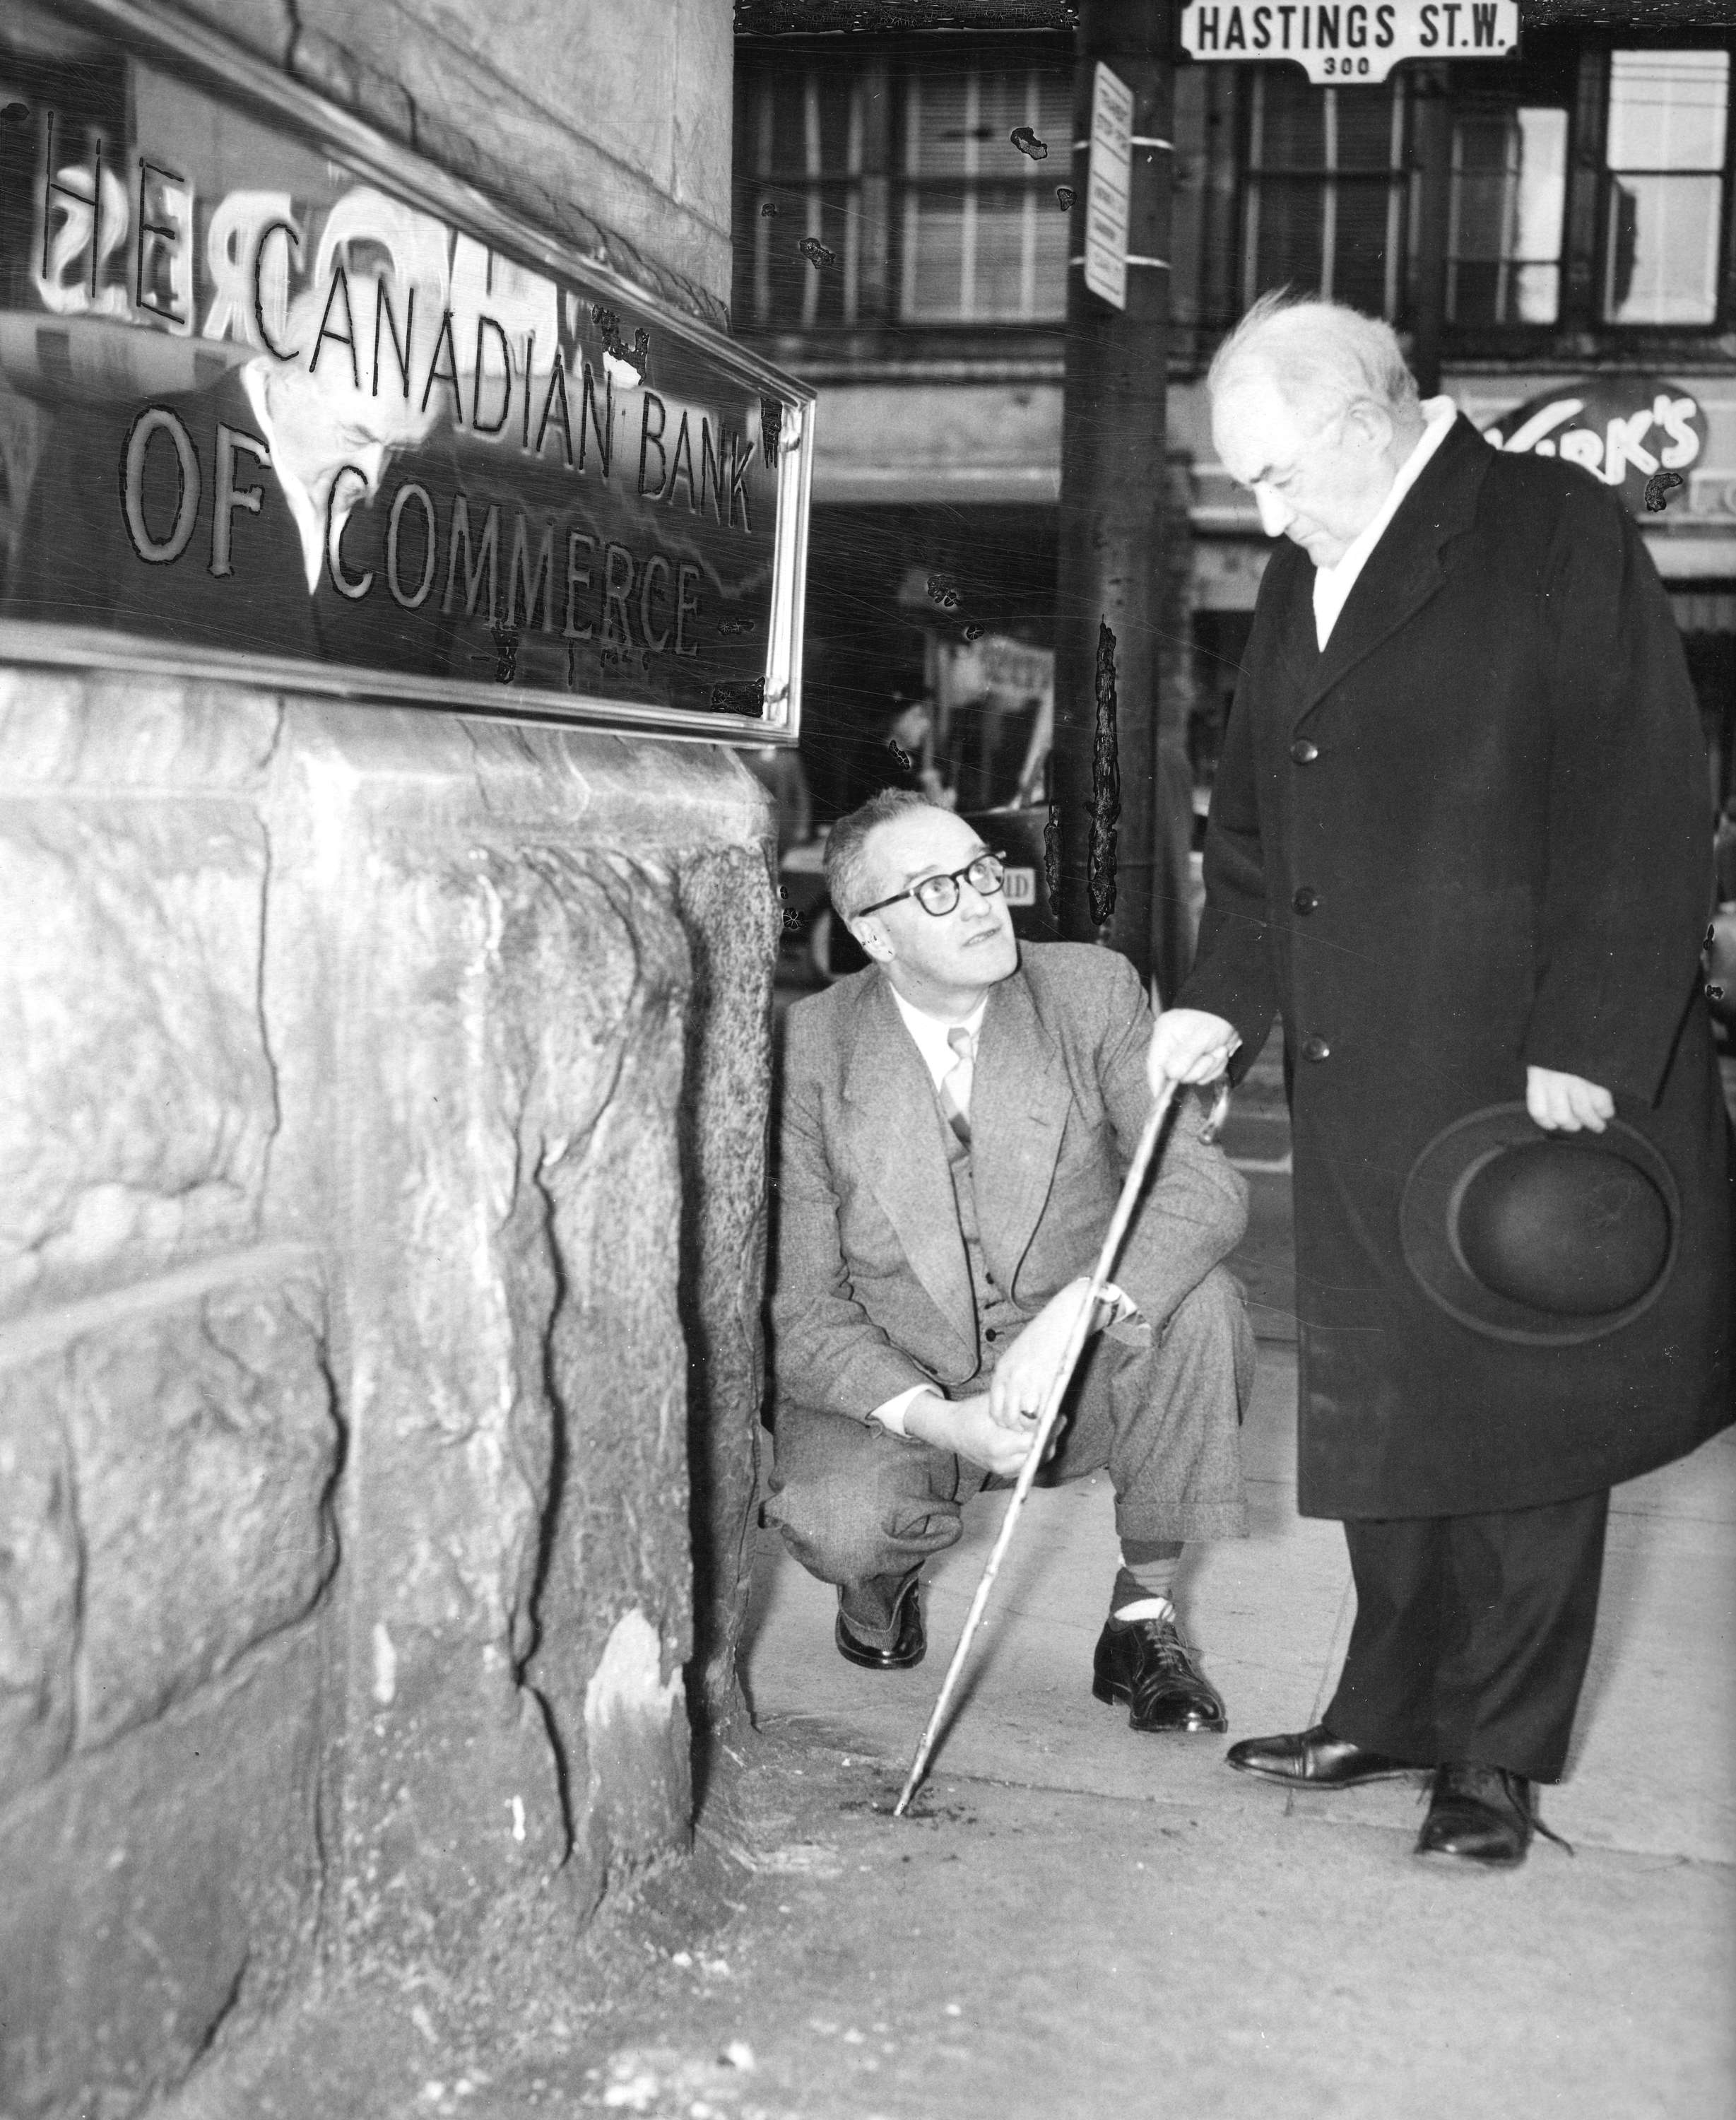 str p306 - [major j.s. matthews and william n. cooper examine the spot where the first survey peg was driven to mark the c.p.r. townsite in 1885] bill cunningham photo, 1953.